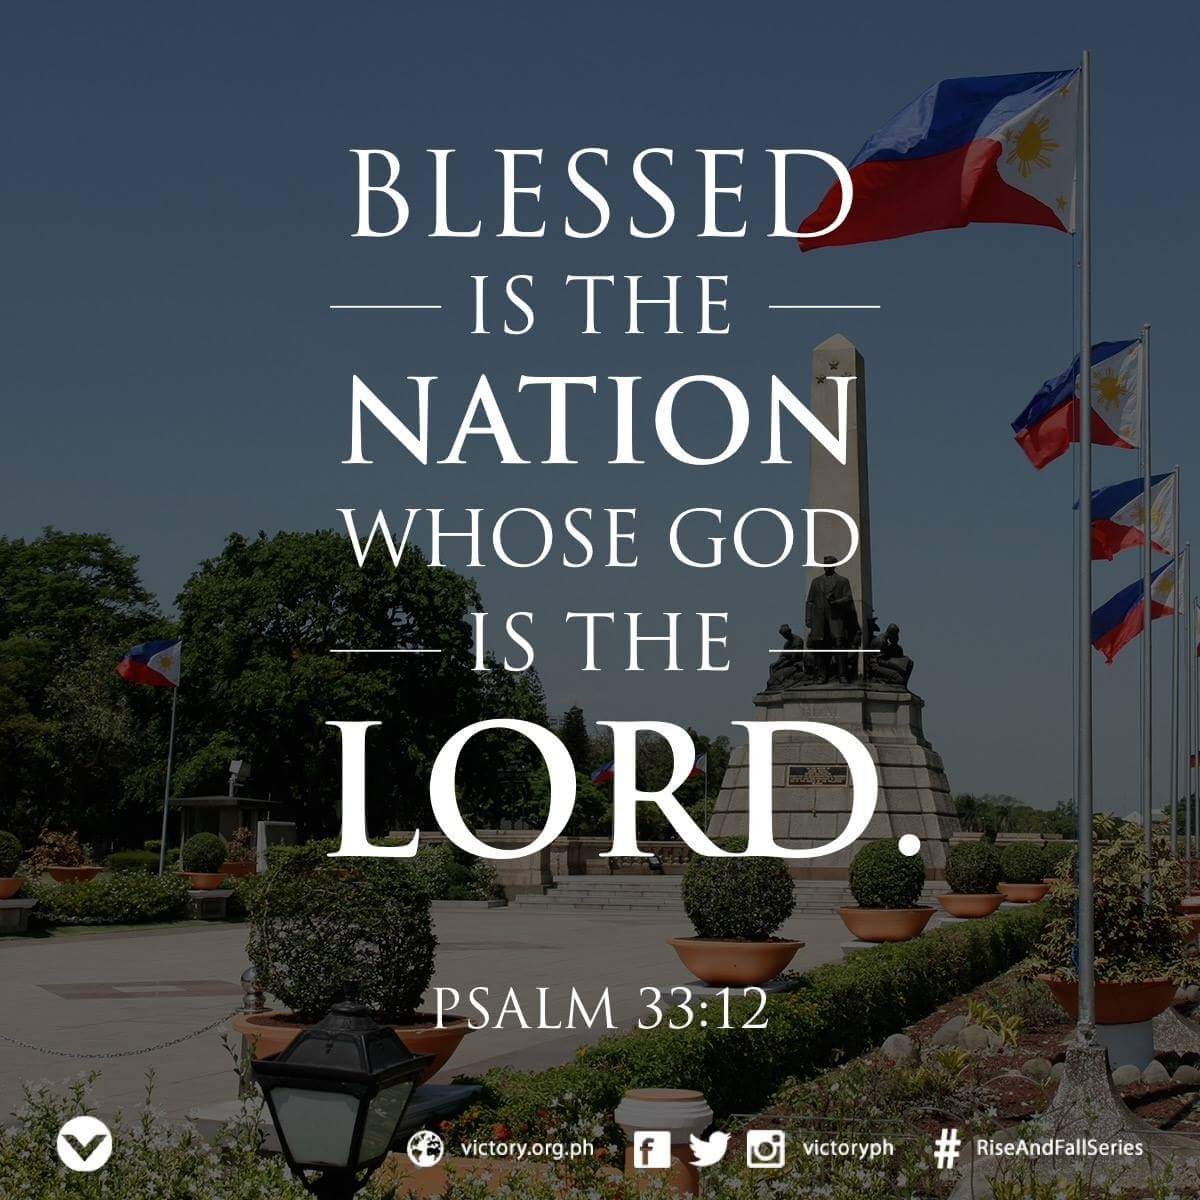 Let's pray for our nation as we elect new gov't leaders. Together, let's pray for peaceful & orderly elections. https://t.co/vpeC2bVql9